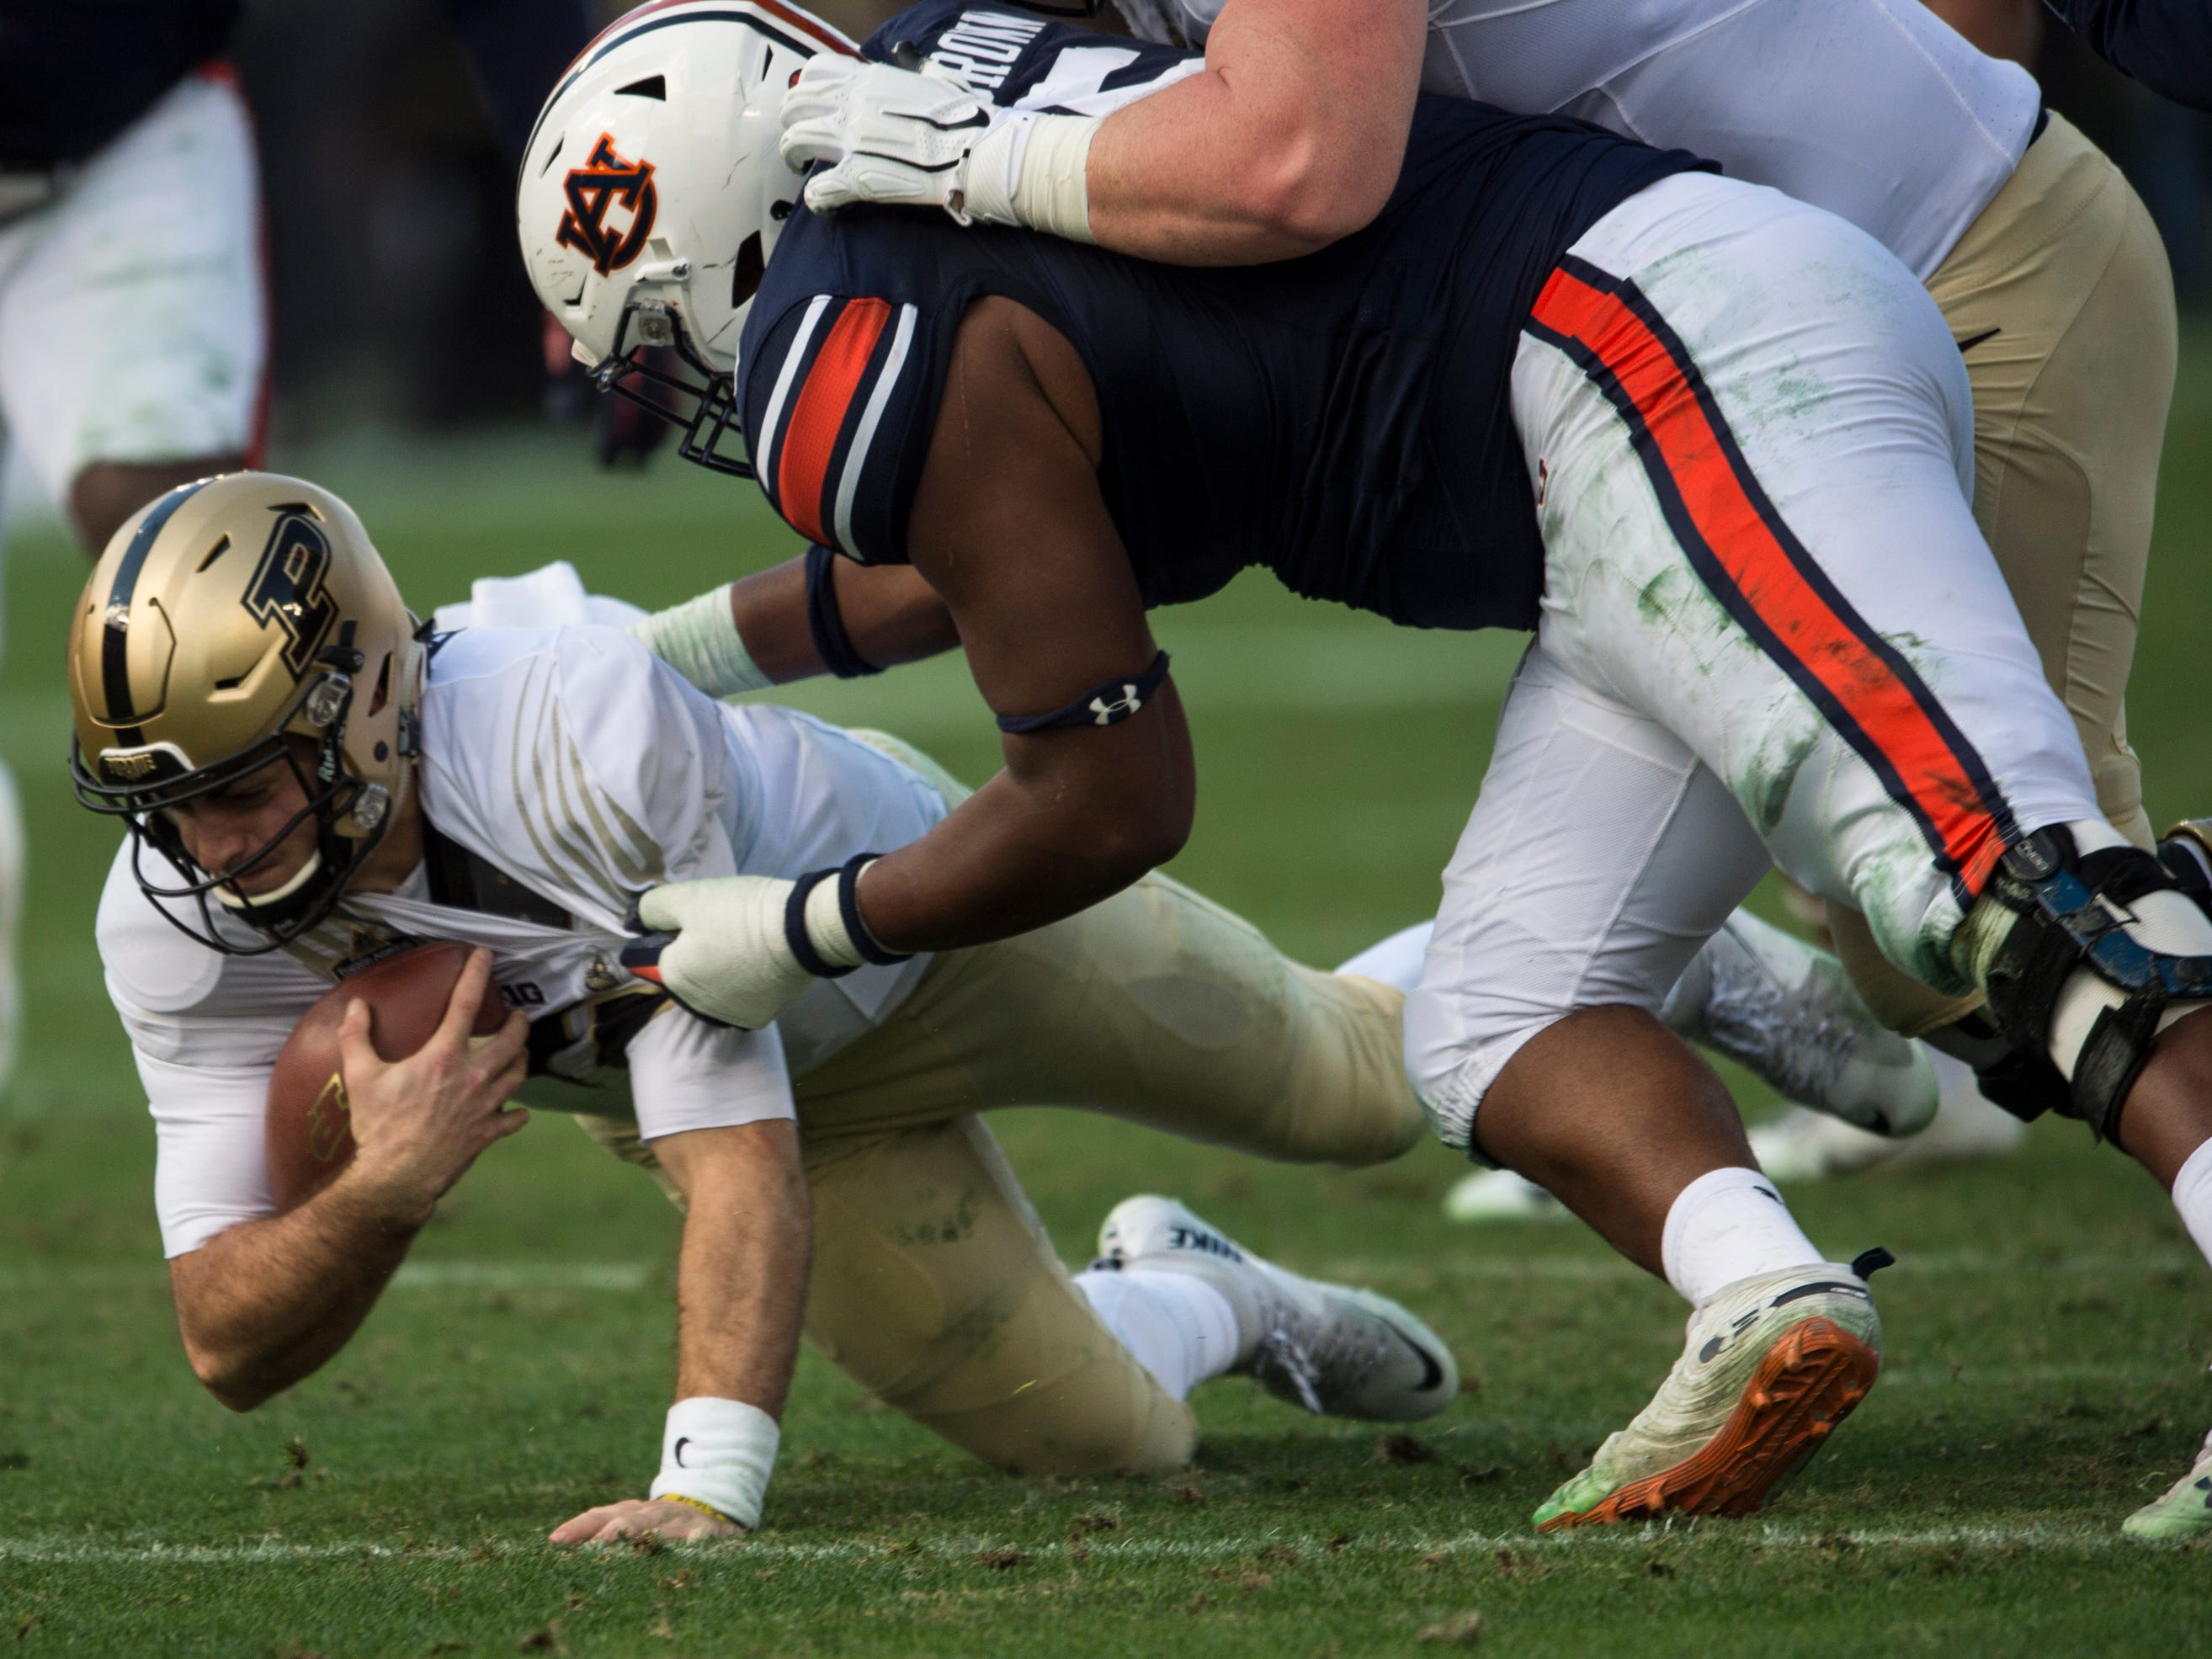 Auburn defensive lineman Derrick Brown (5) drags down Purdue quarterback David Blough (11) during the Music City Bowl at Nissan Stadium in Nashville, Tenn., on Friday, Dec. 28, 2018. Auburn defeated Purdue 63-14.